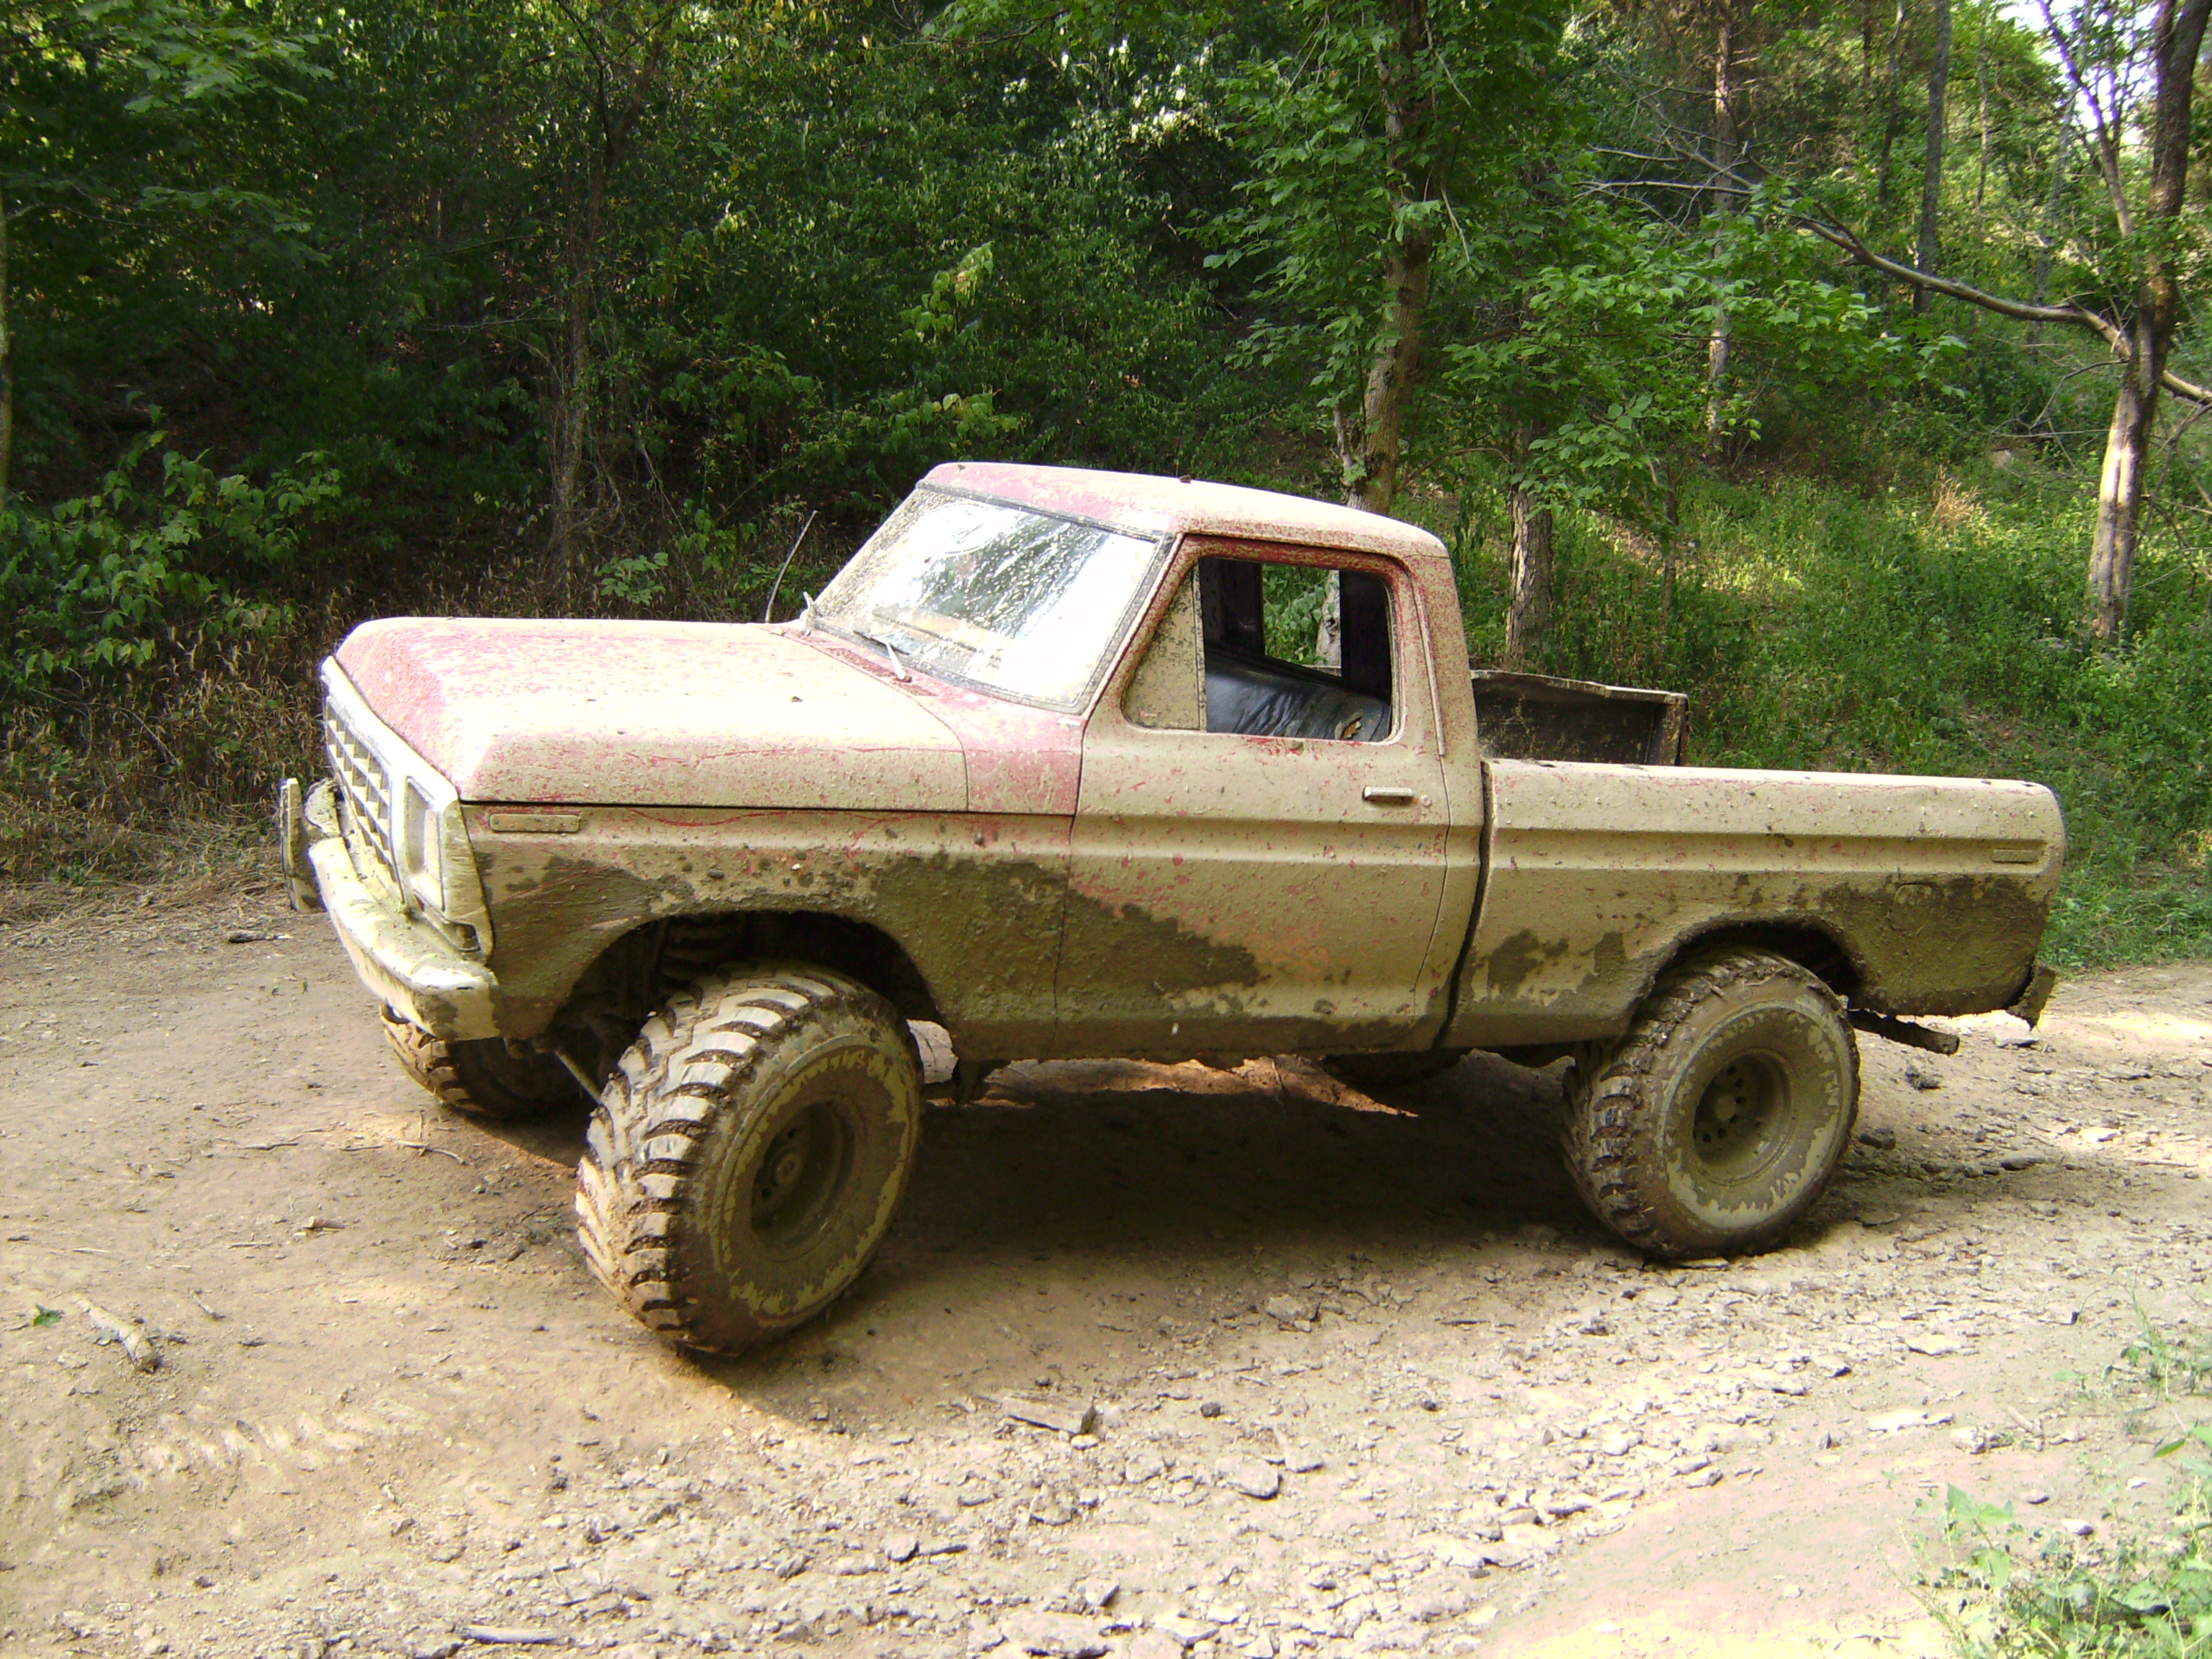 Ford Mudding 4x4 Mud Bogging 4x4 Offroad Race